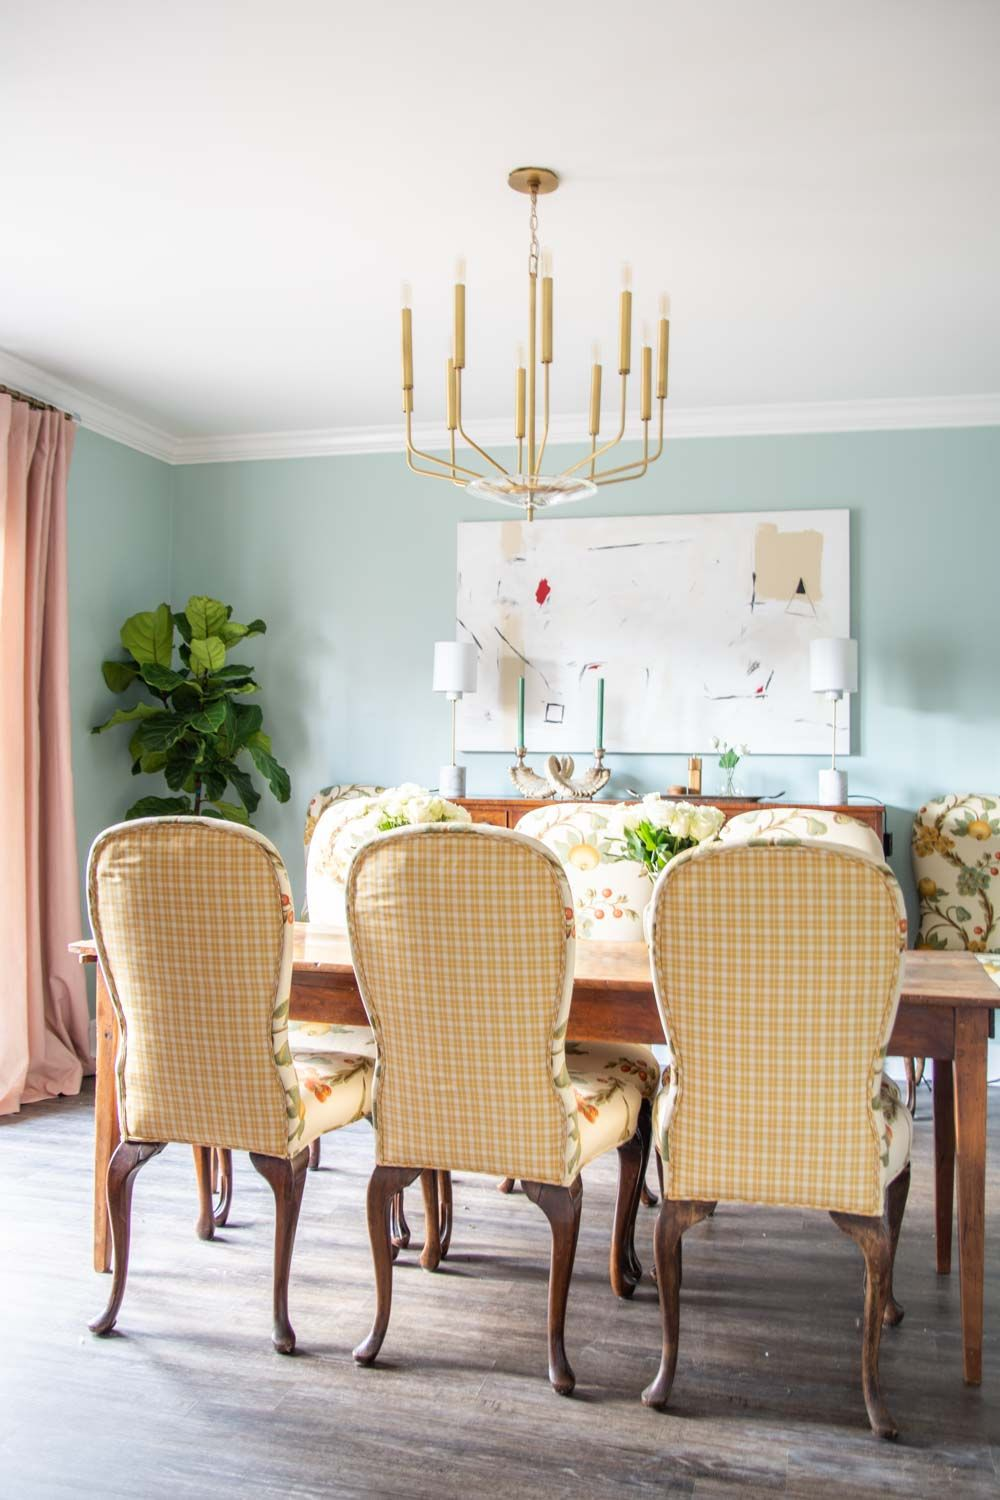 Favorite Paint Colors Of Instagram Dining Room Blue Dining Room